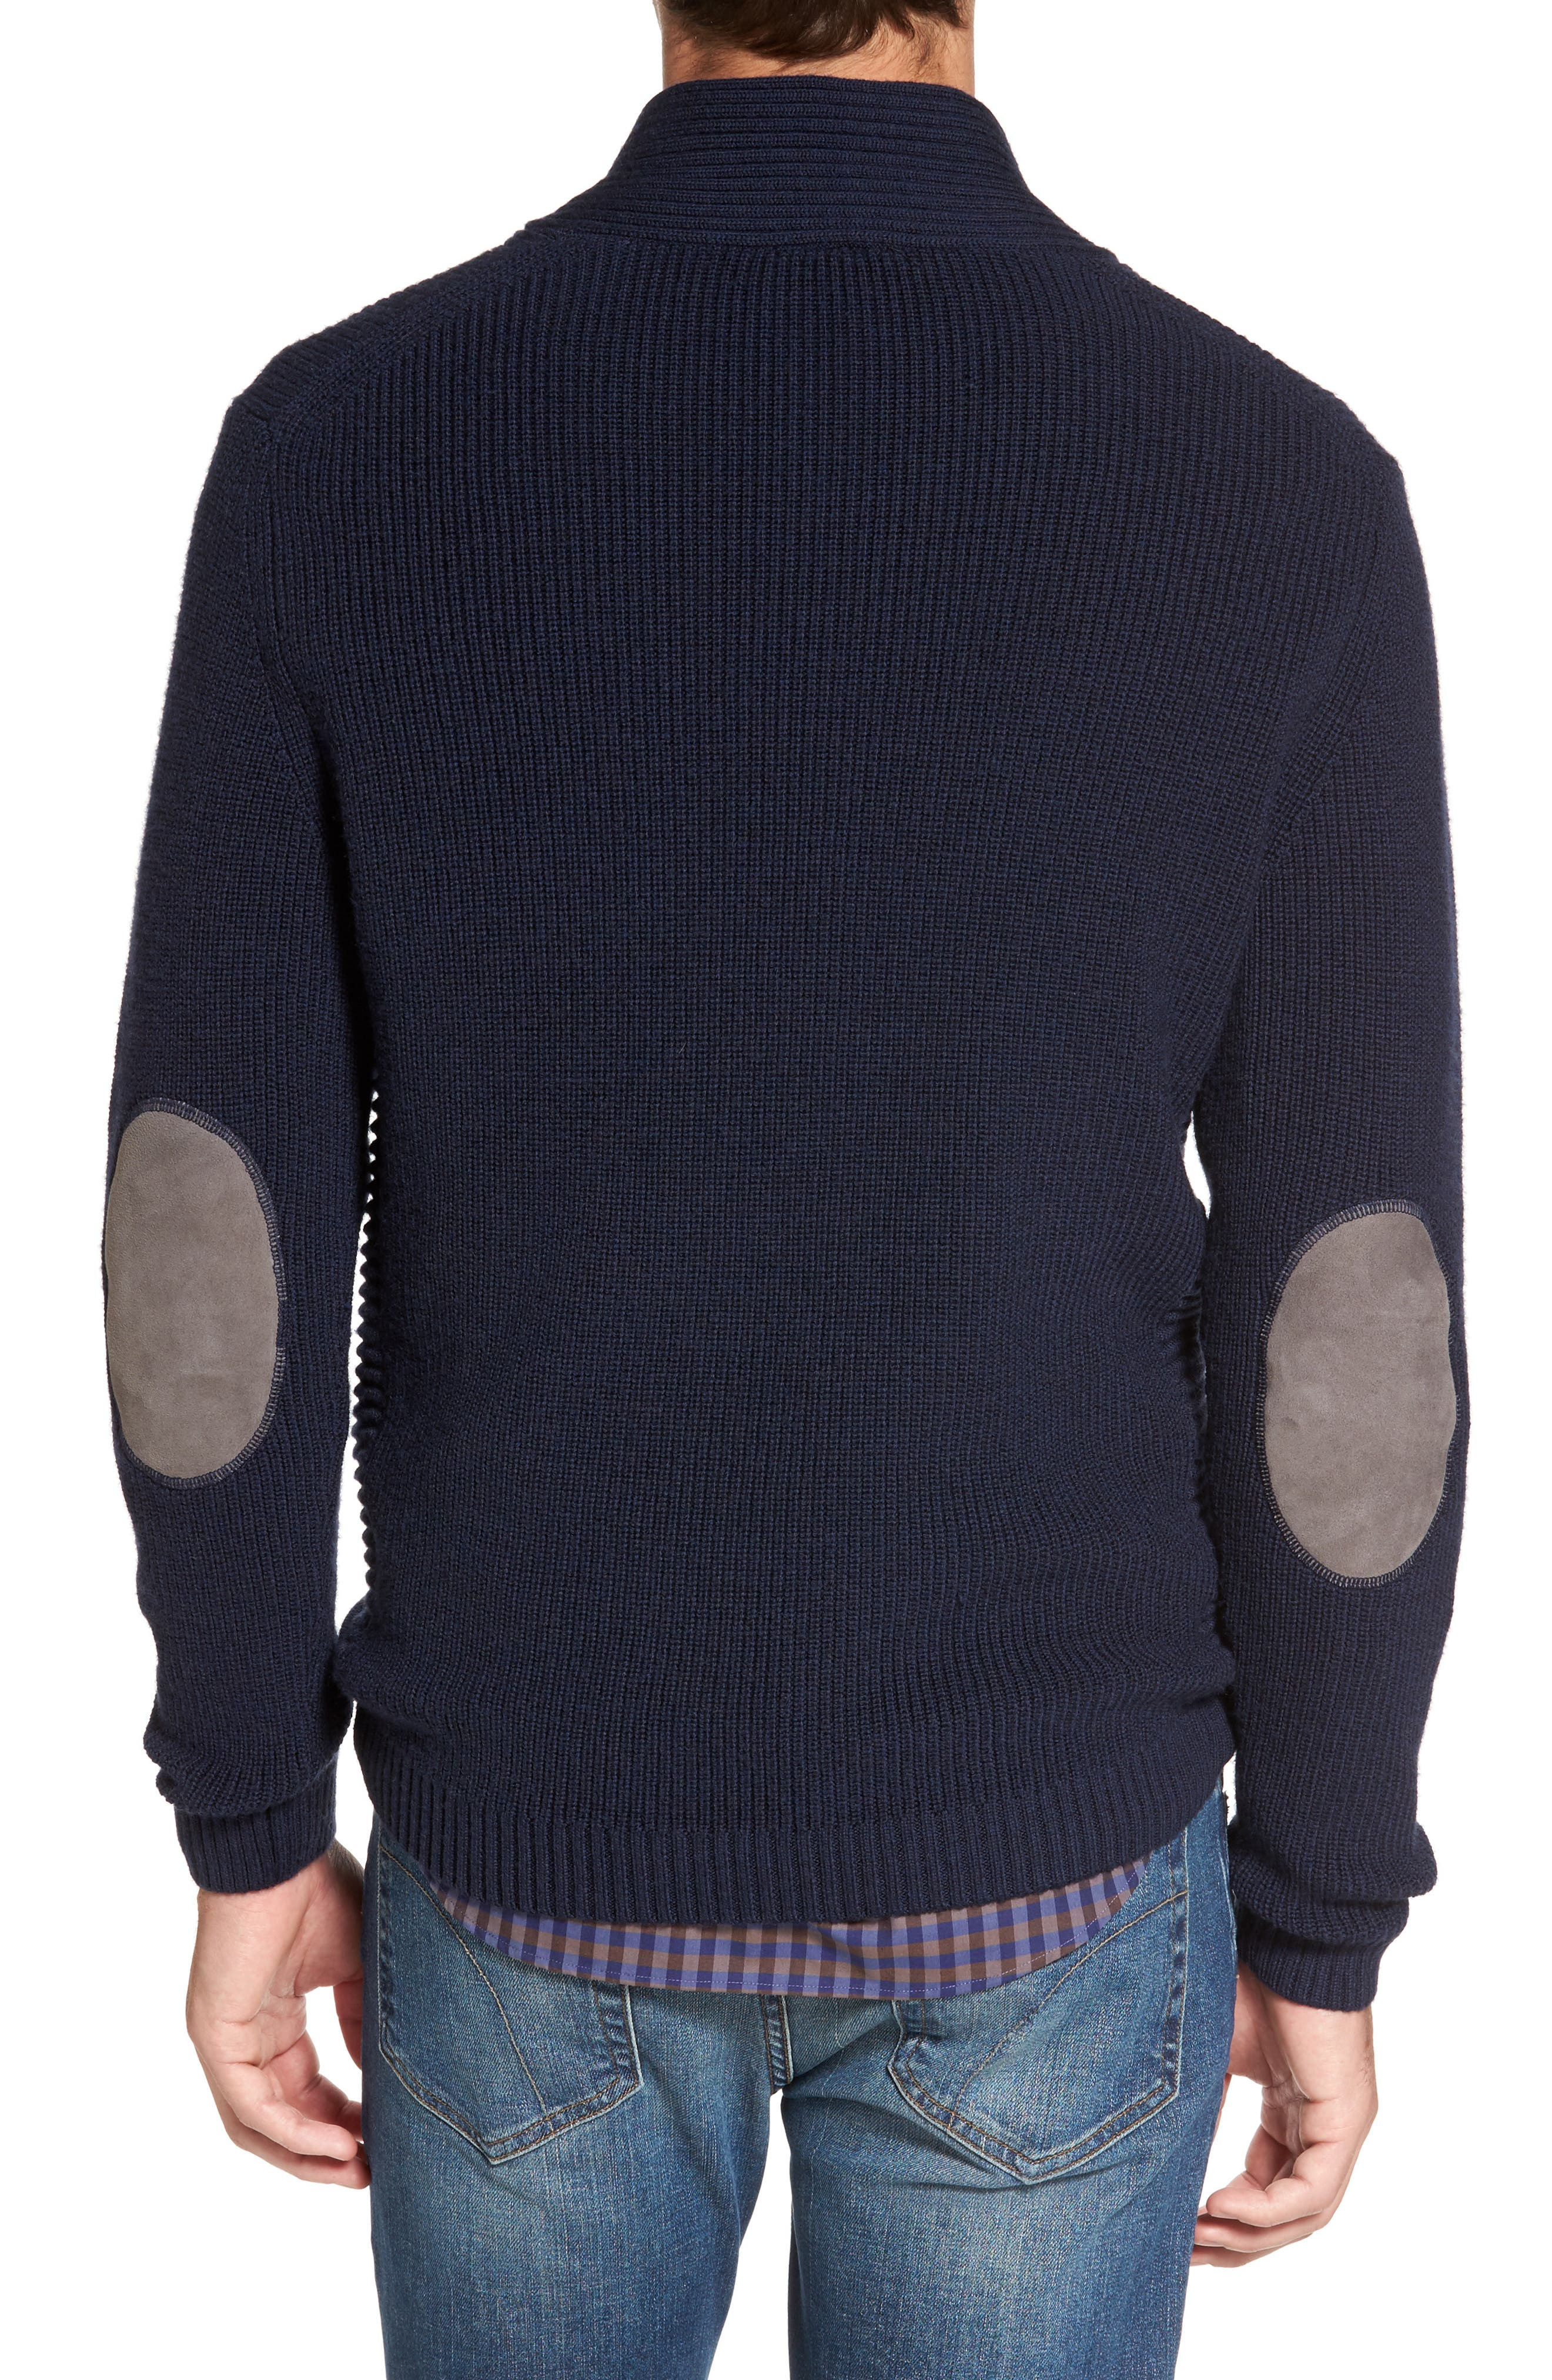 Charlesworth Suede Patch Merino Wool Sweater,                             Alternate thumbnail 2, color,                             Marine